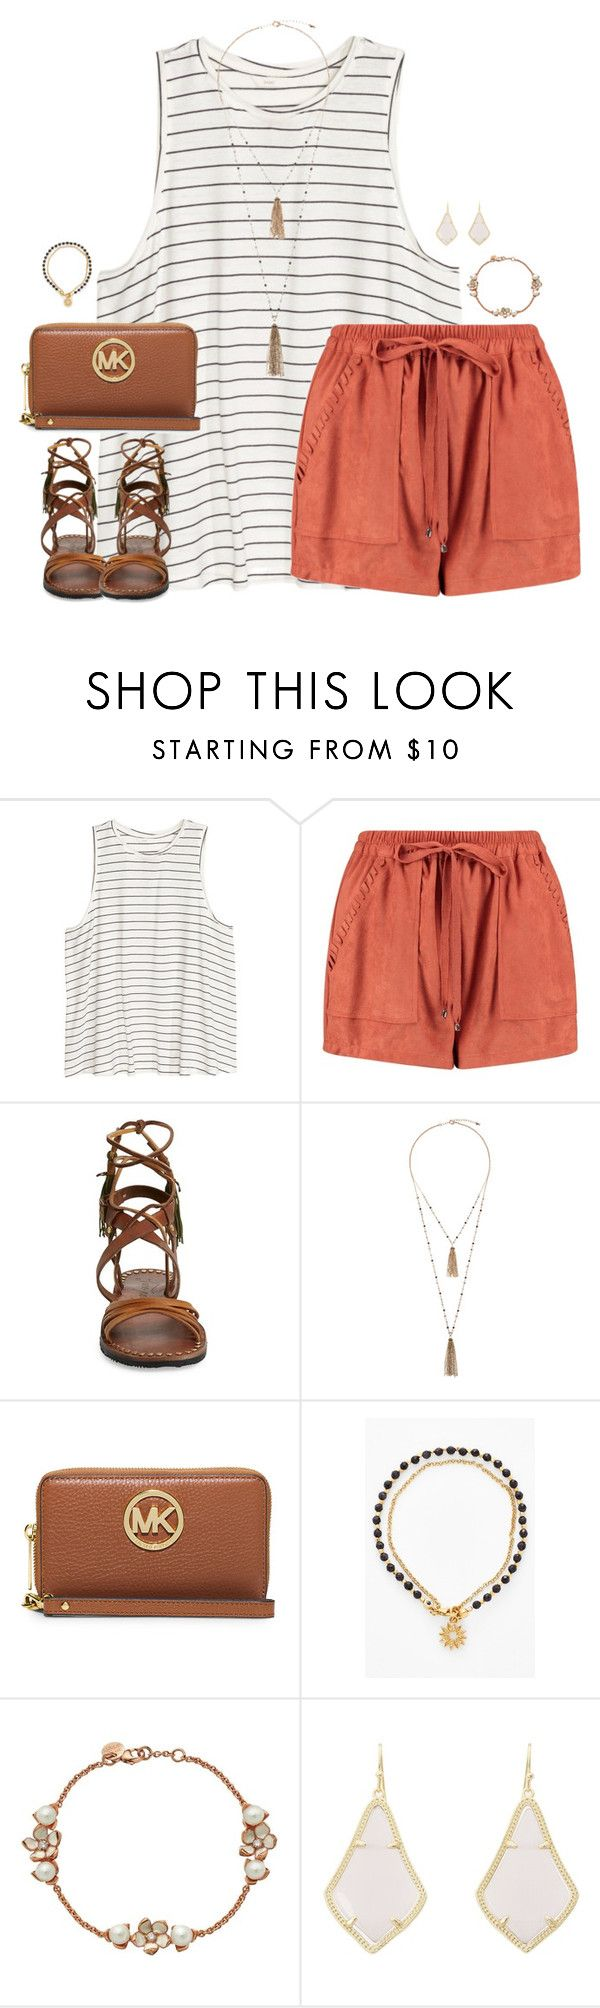 """""""//"""" by kaley-ii ❤ liked on Polyvore featuring Boohoo, Free People, Eloquii, MICHAEL Michael Kors, Astley Clarke, Shaun Leane and Kendra Scott"""